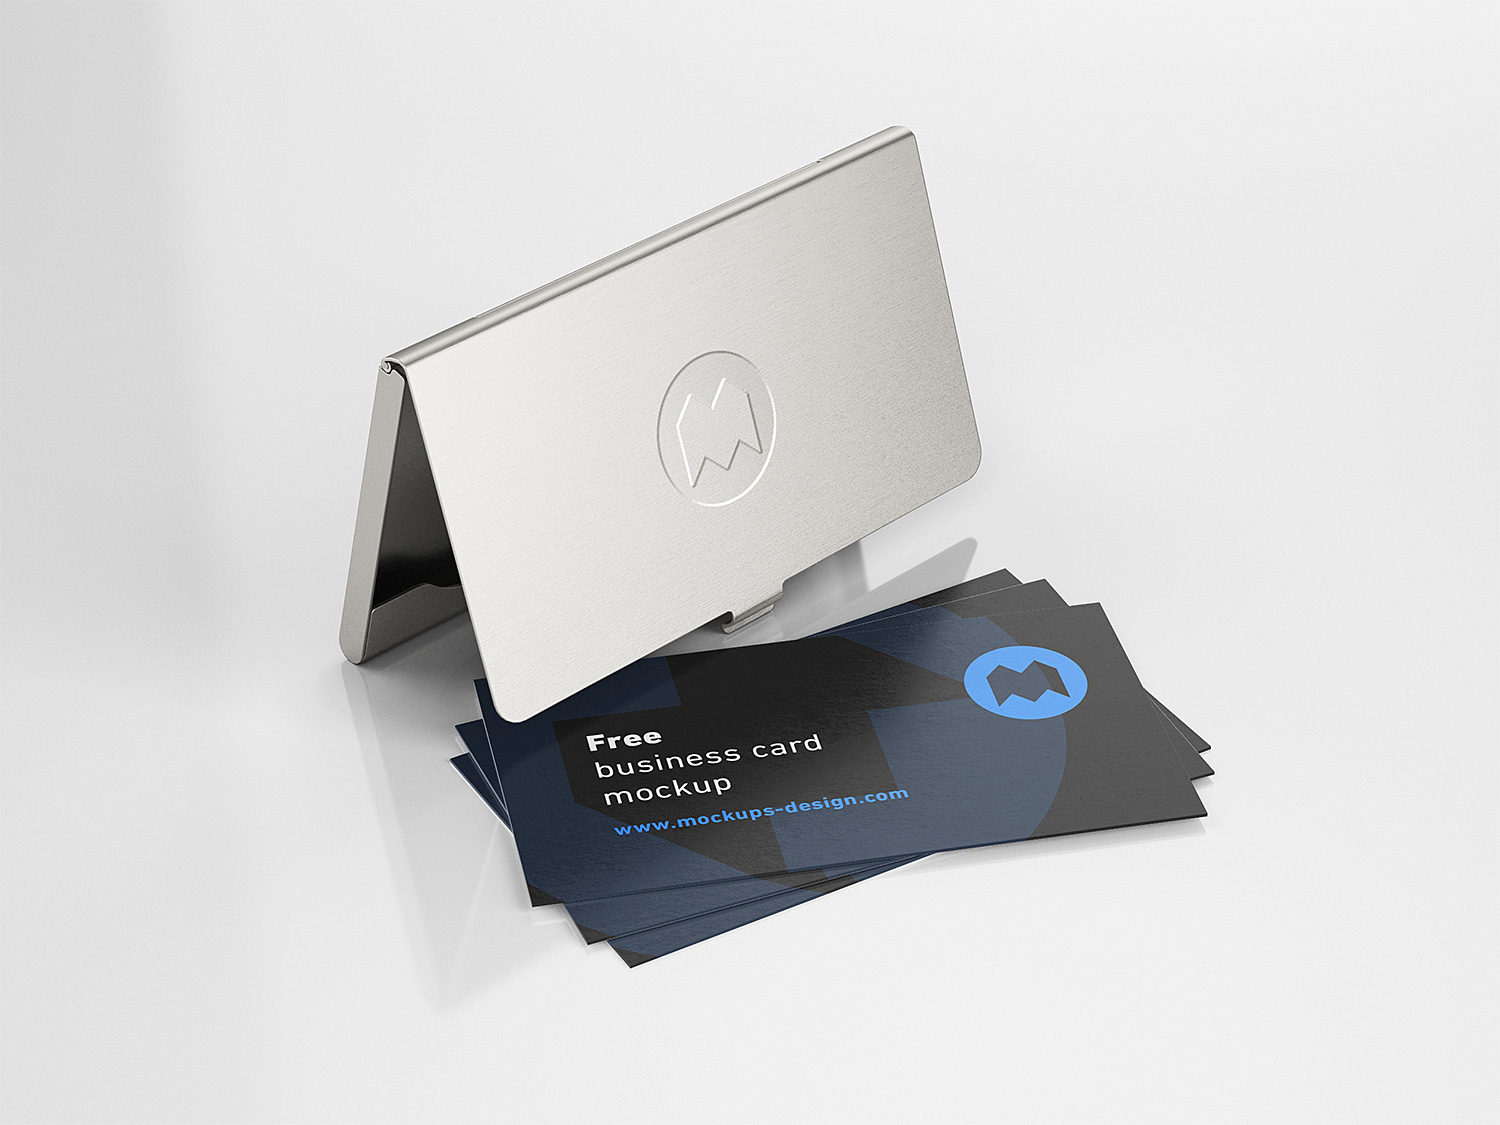 Business-Card-Holder-Mockup-04